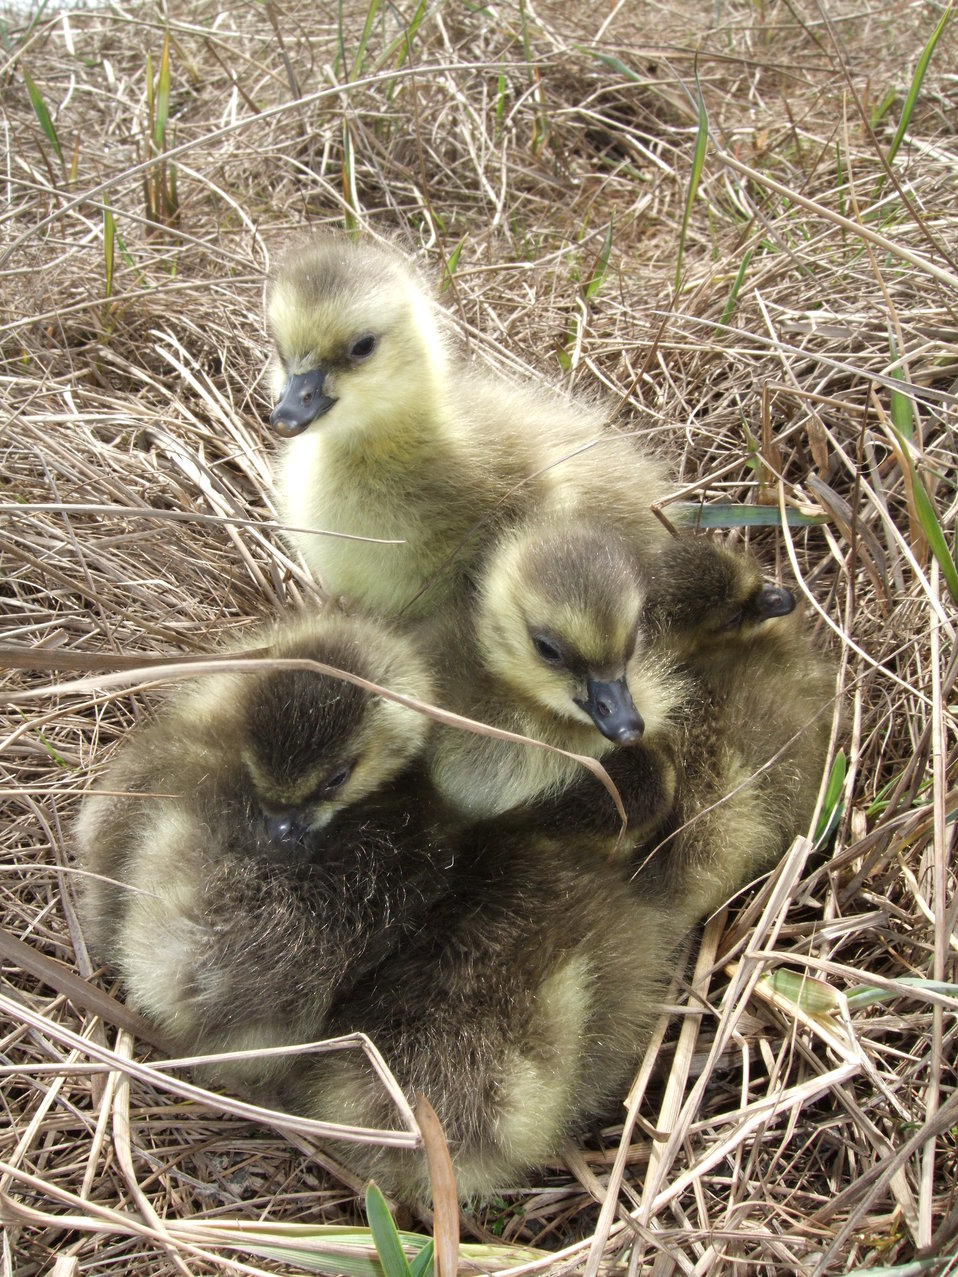 Cackler goslings